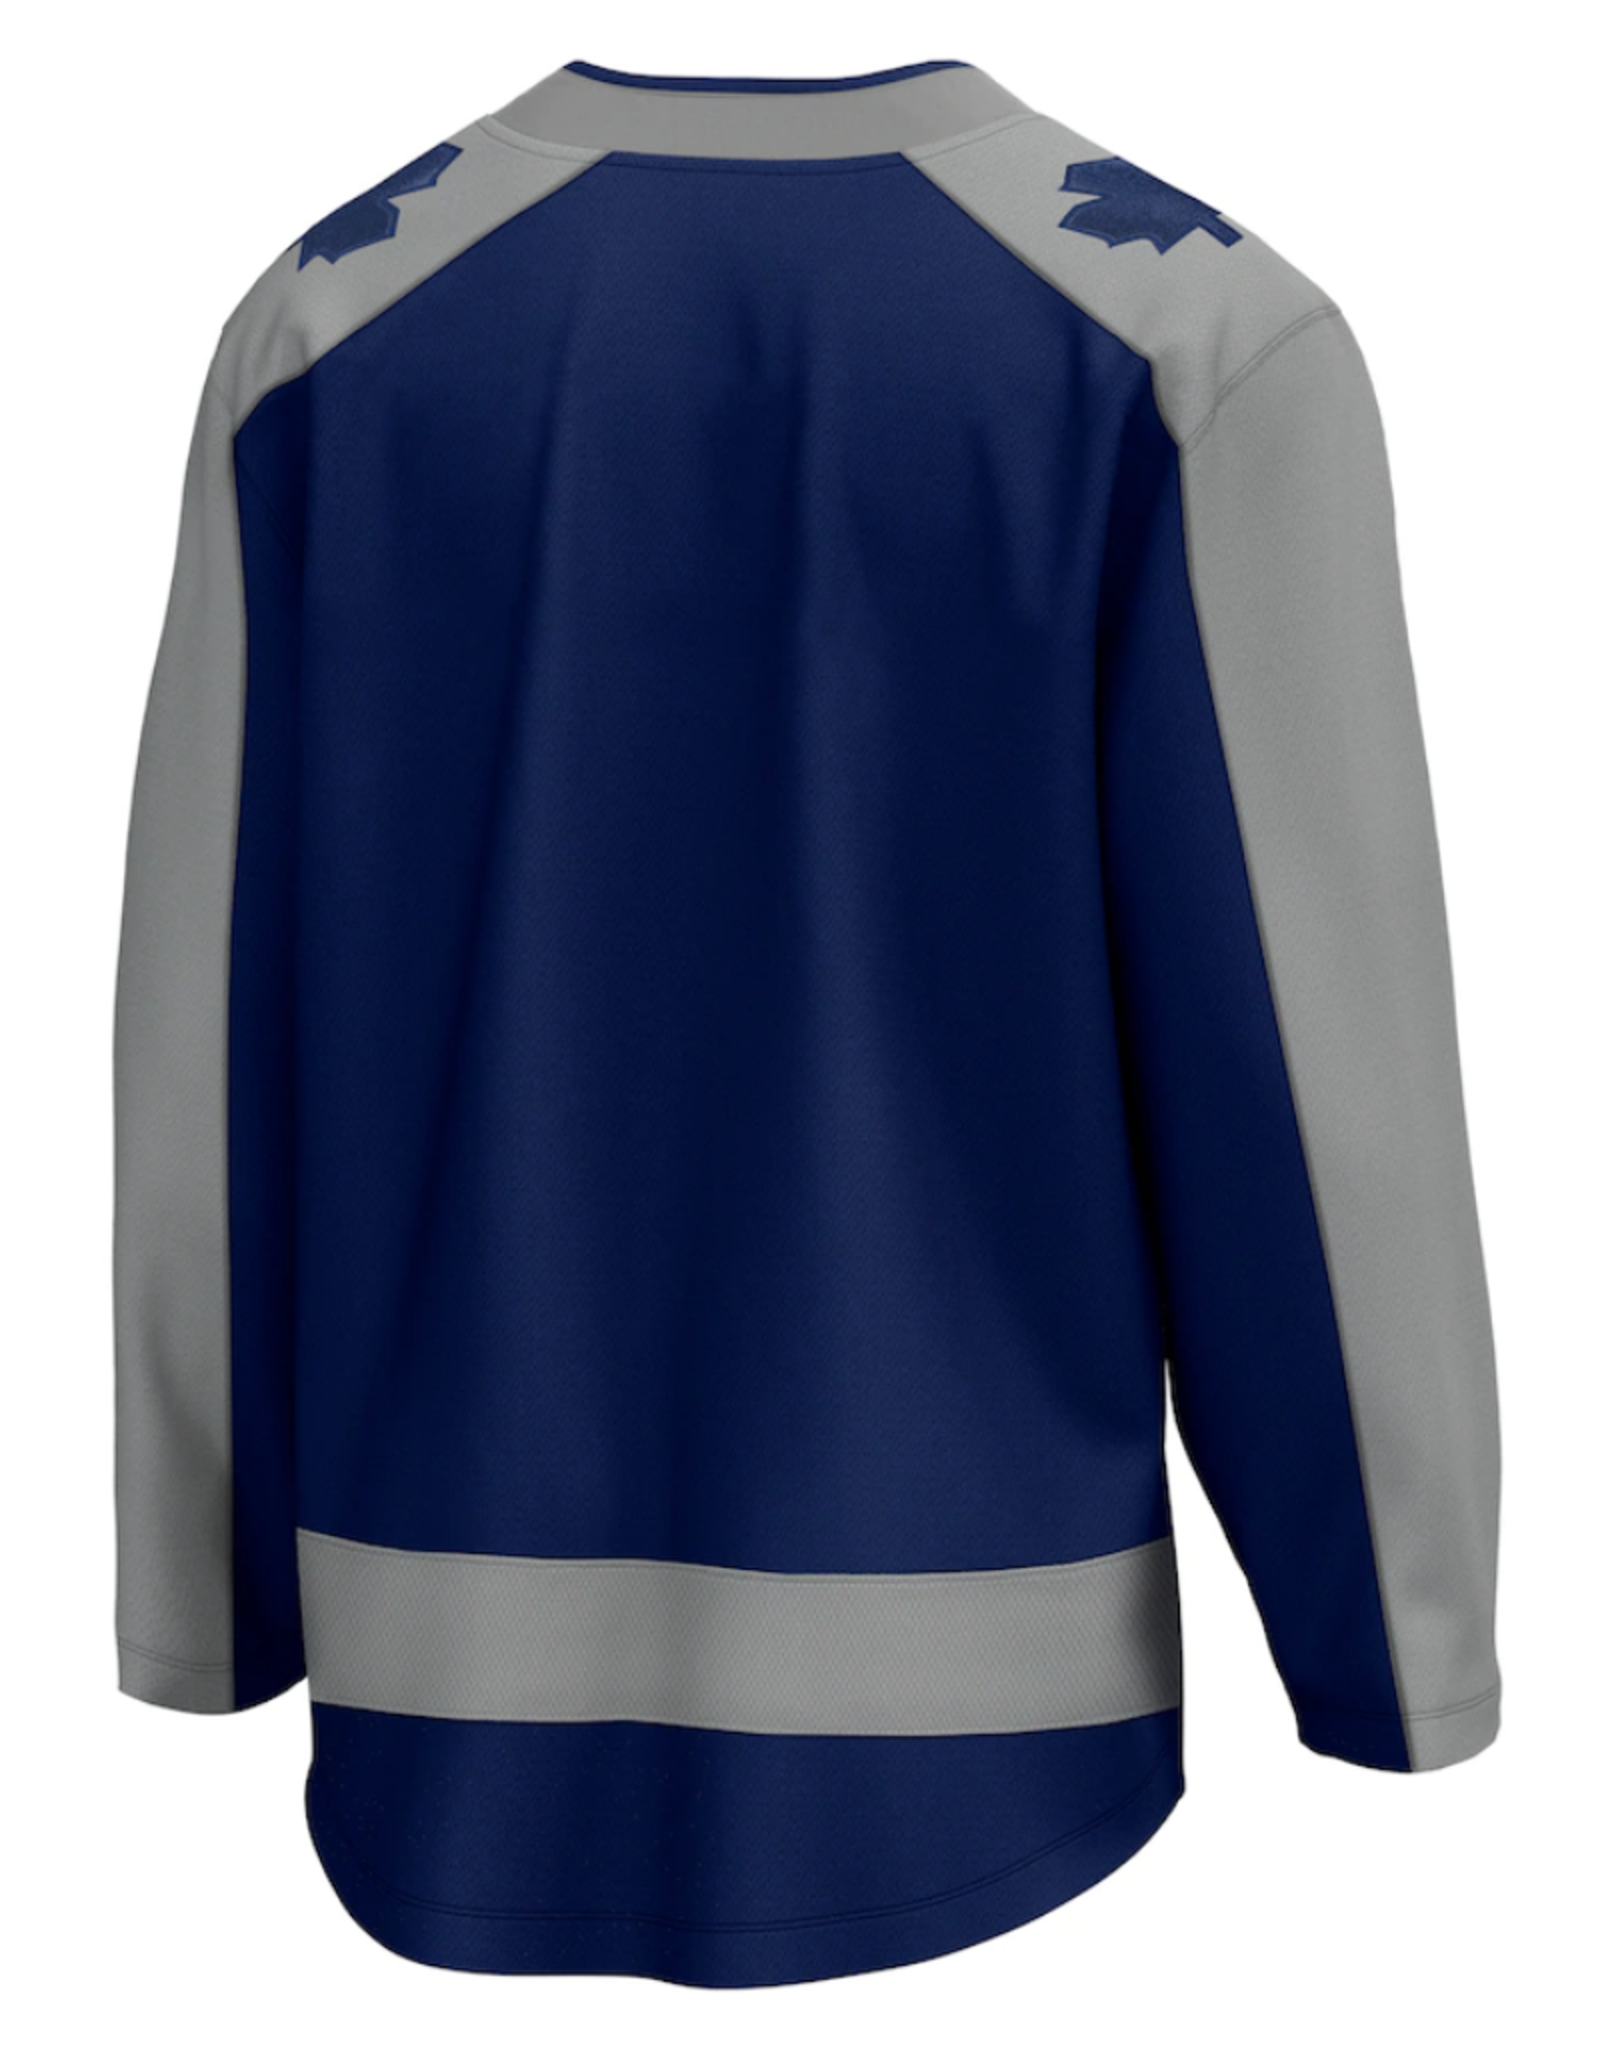 Fanatics Fanatics Men's Breakaway Retro Reverse Jersey Toronto Maple Leafs